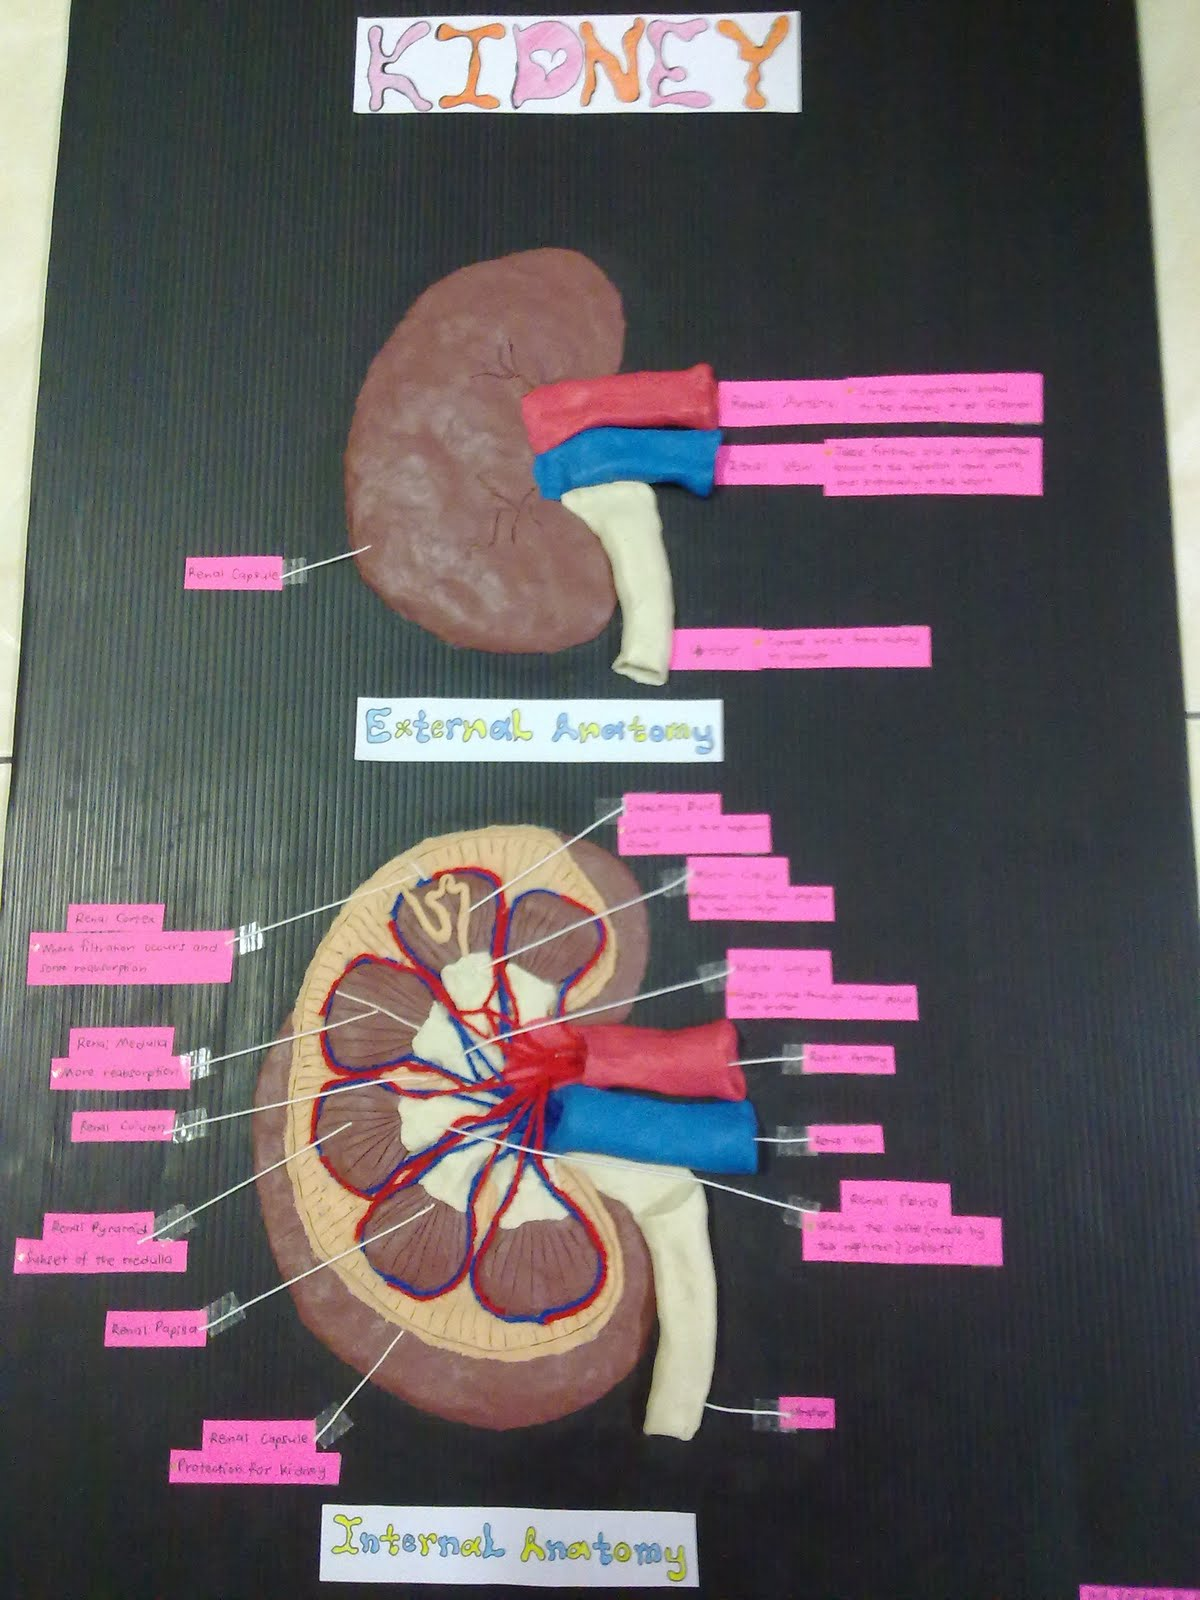 Firahlilo How To Make A Kidney Model